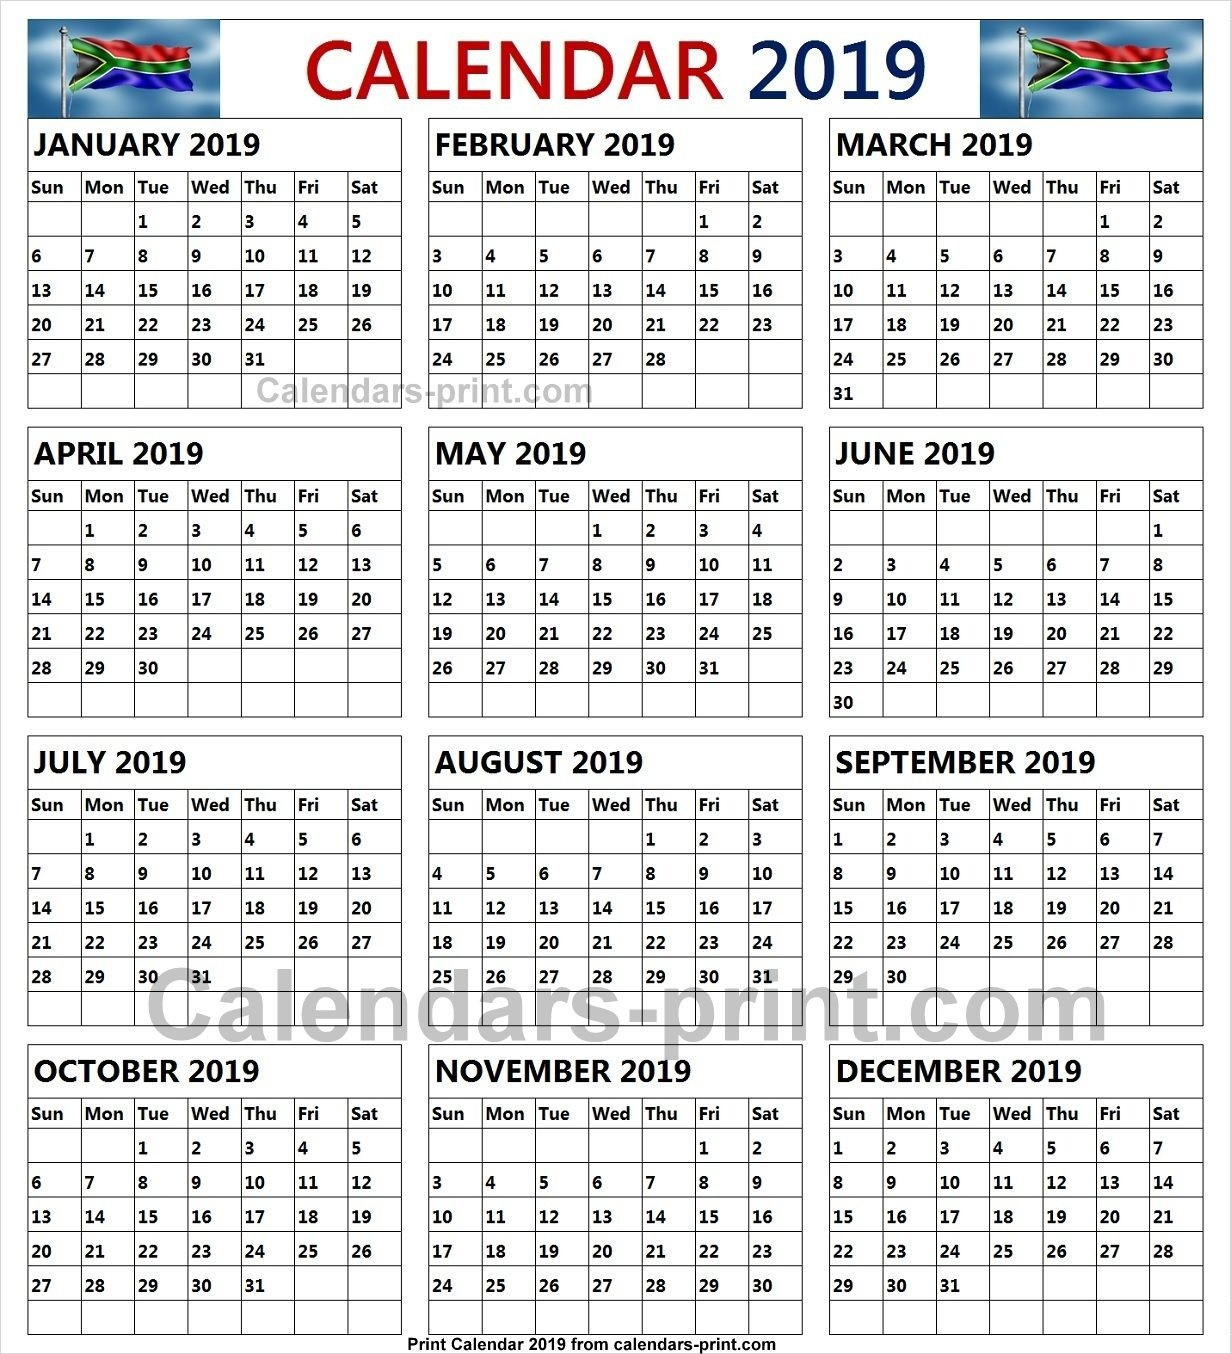 2019 South African Calendar With Public Holidays | Print-Calender With Public Holidays